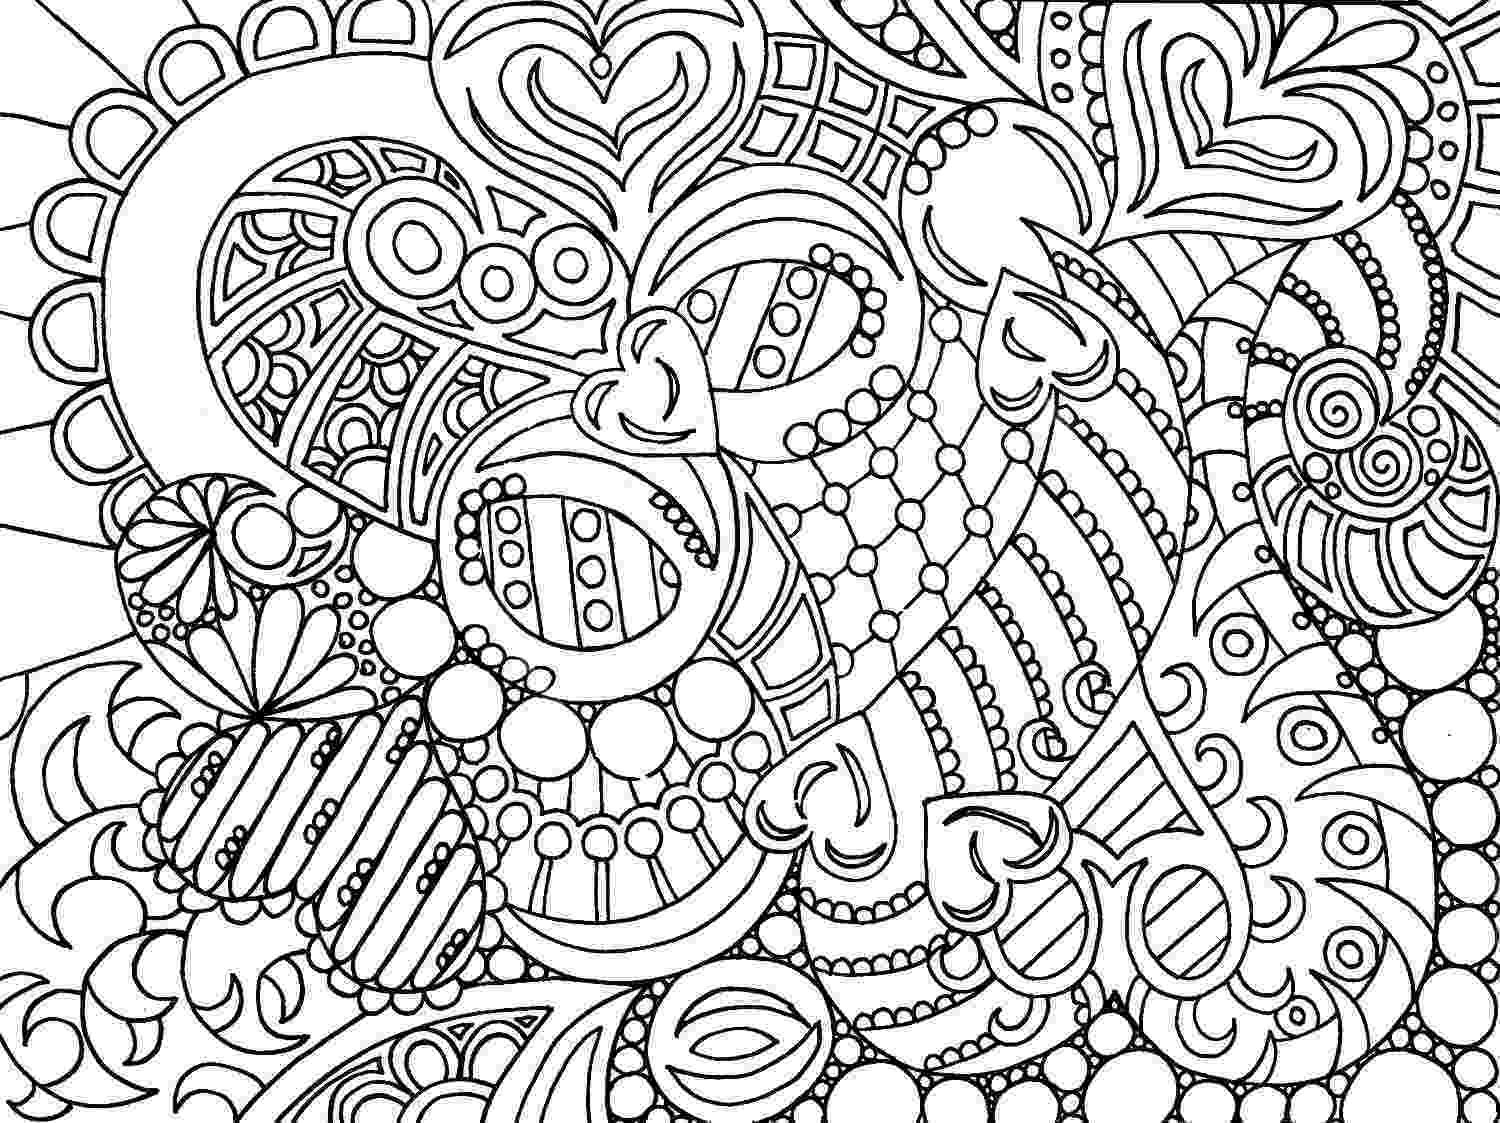 abstract coloring pages for adults and artists free printable abstract coloring pages for adults for abstract coloring and adults pages artists